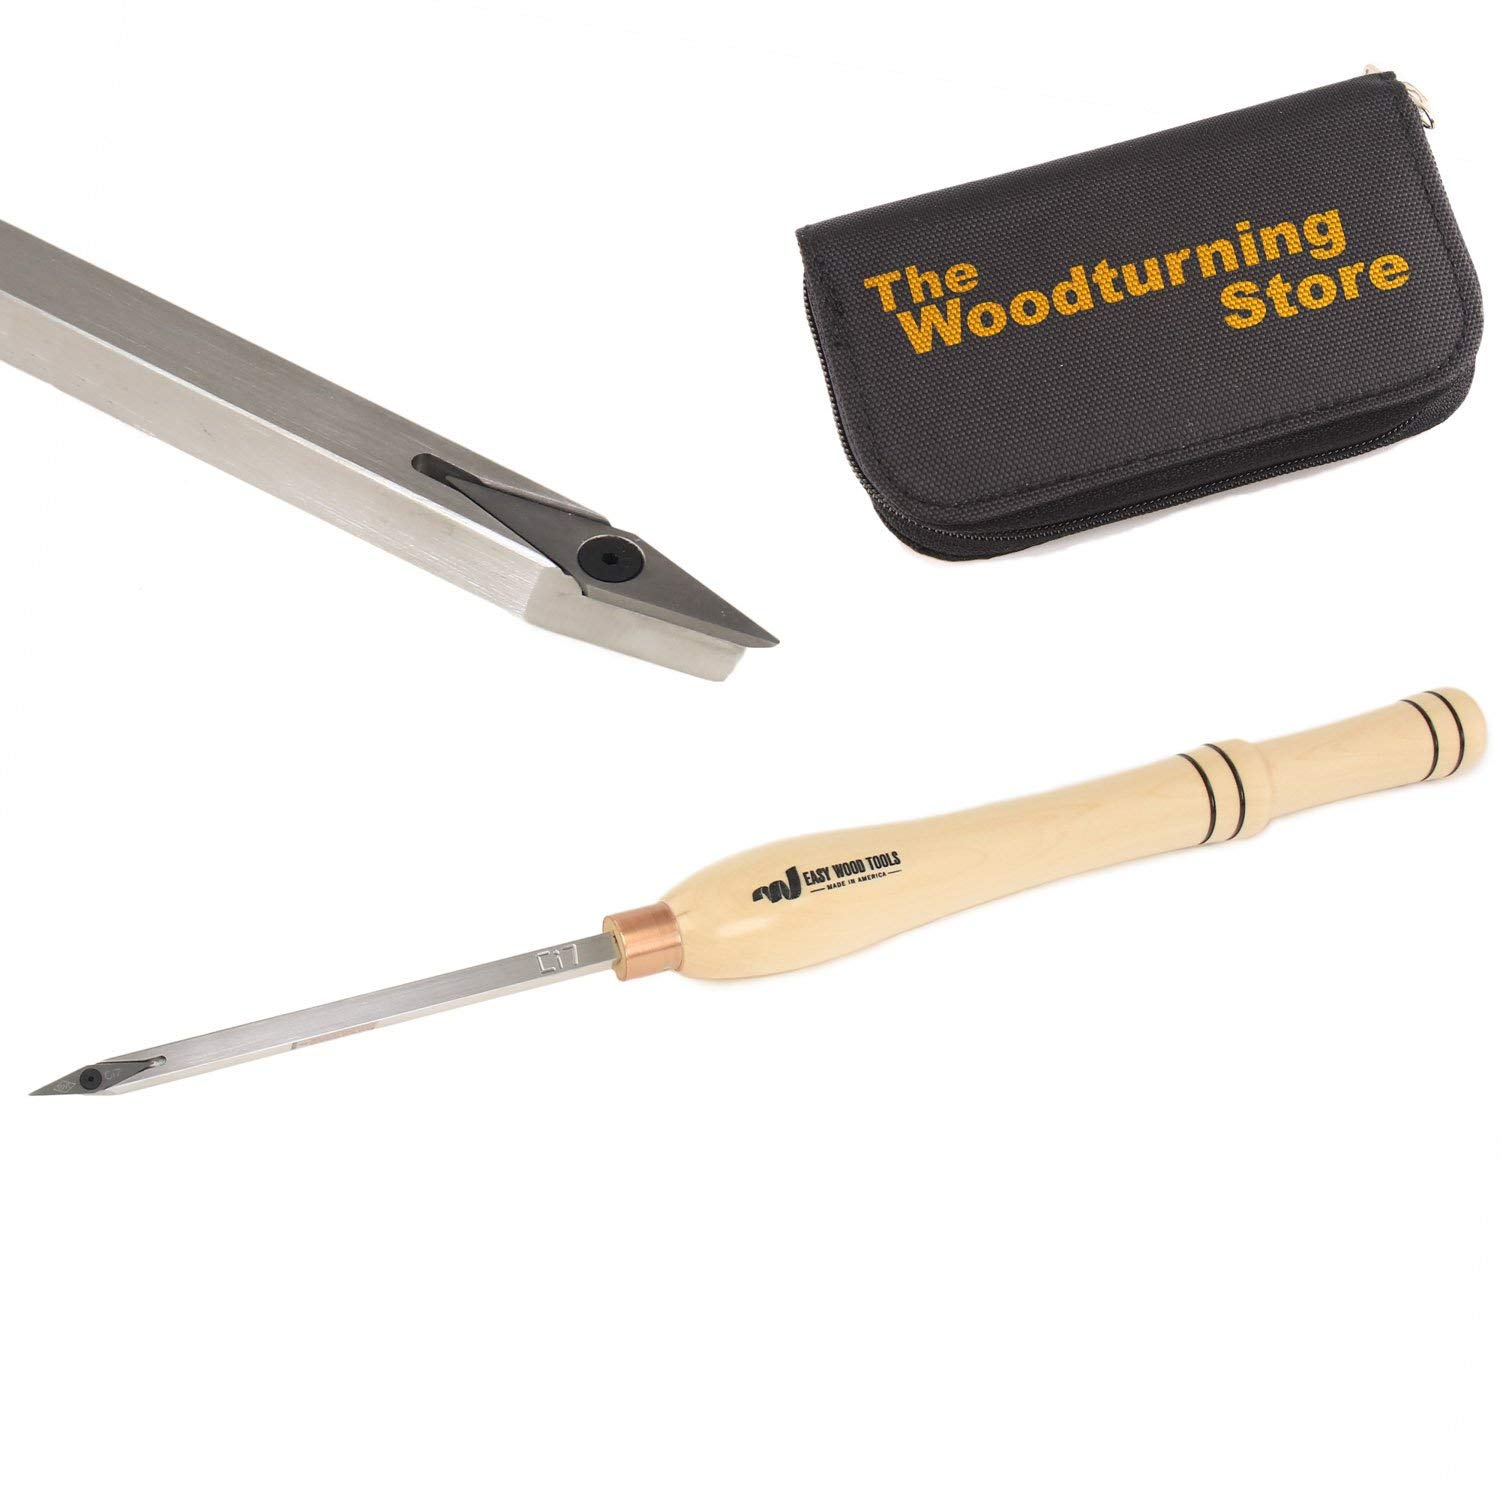 Easy Wood Tools, 7700, Mid-Size Easy Micro Detailer with BONUS Woodturning Store Carbide Cutter Holder